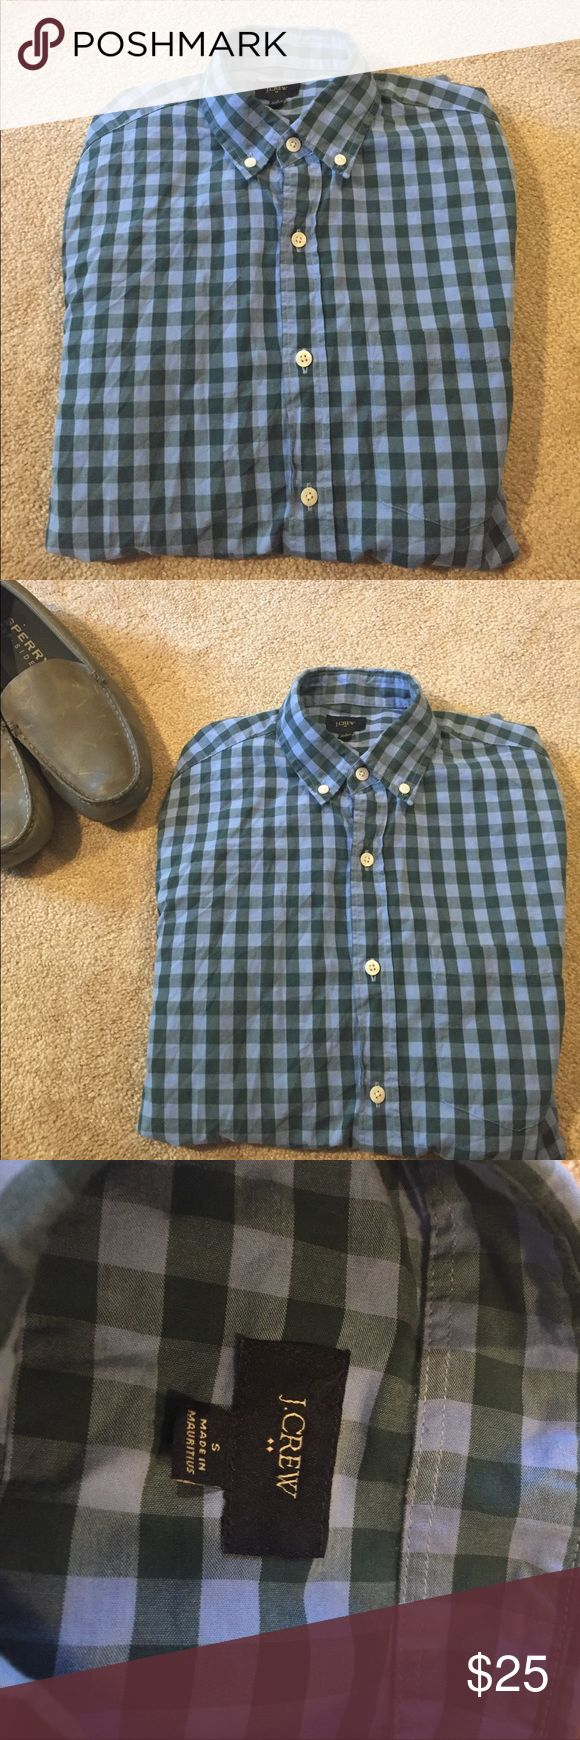 Men's J Crew Plaid Button Down - Small Ecclenmt condtion no rips, stains, or tears. J Crew men's small lightweight button down. J. Crew Shirts Casual Button Down Shirts